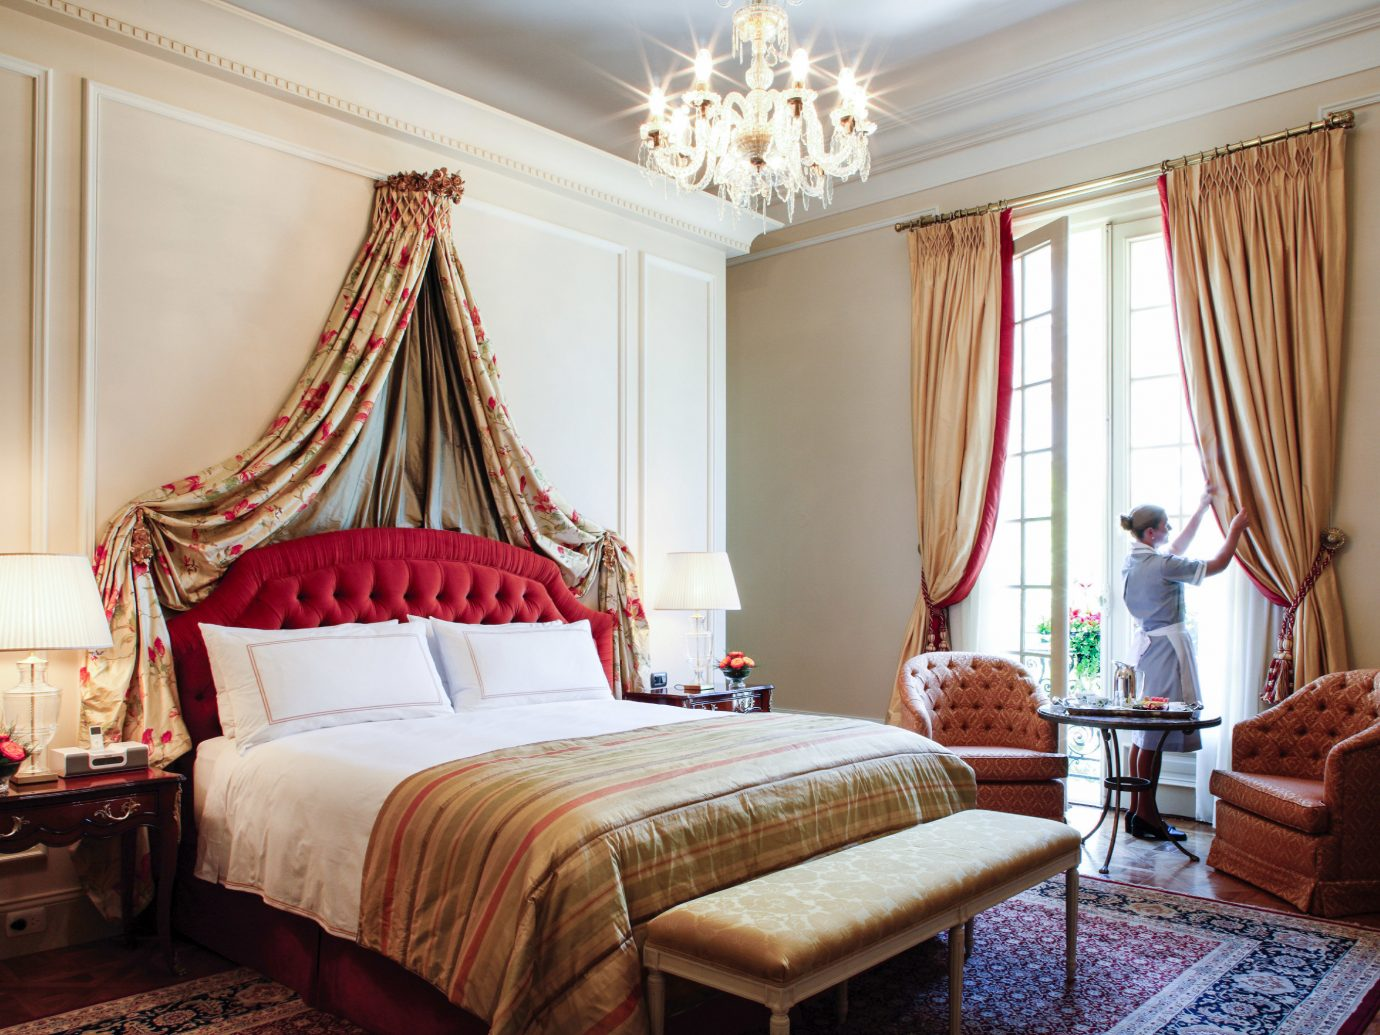 Boutique Hotels Luxury Travel indoor wall room floor bed Bedroom interior design home Suite window treatment textile ceiling curtain bed frame window covering real estate estate window furniture hotel bed sheet decor house bedding decorated